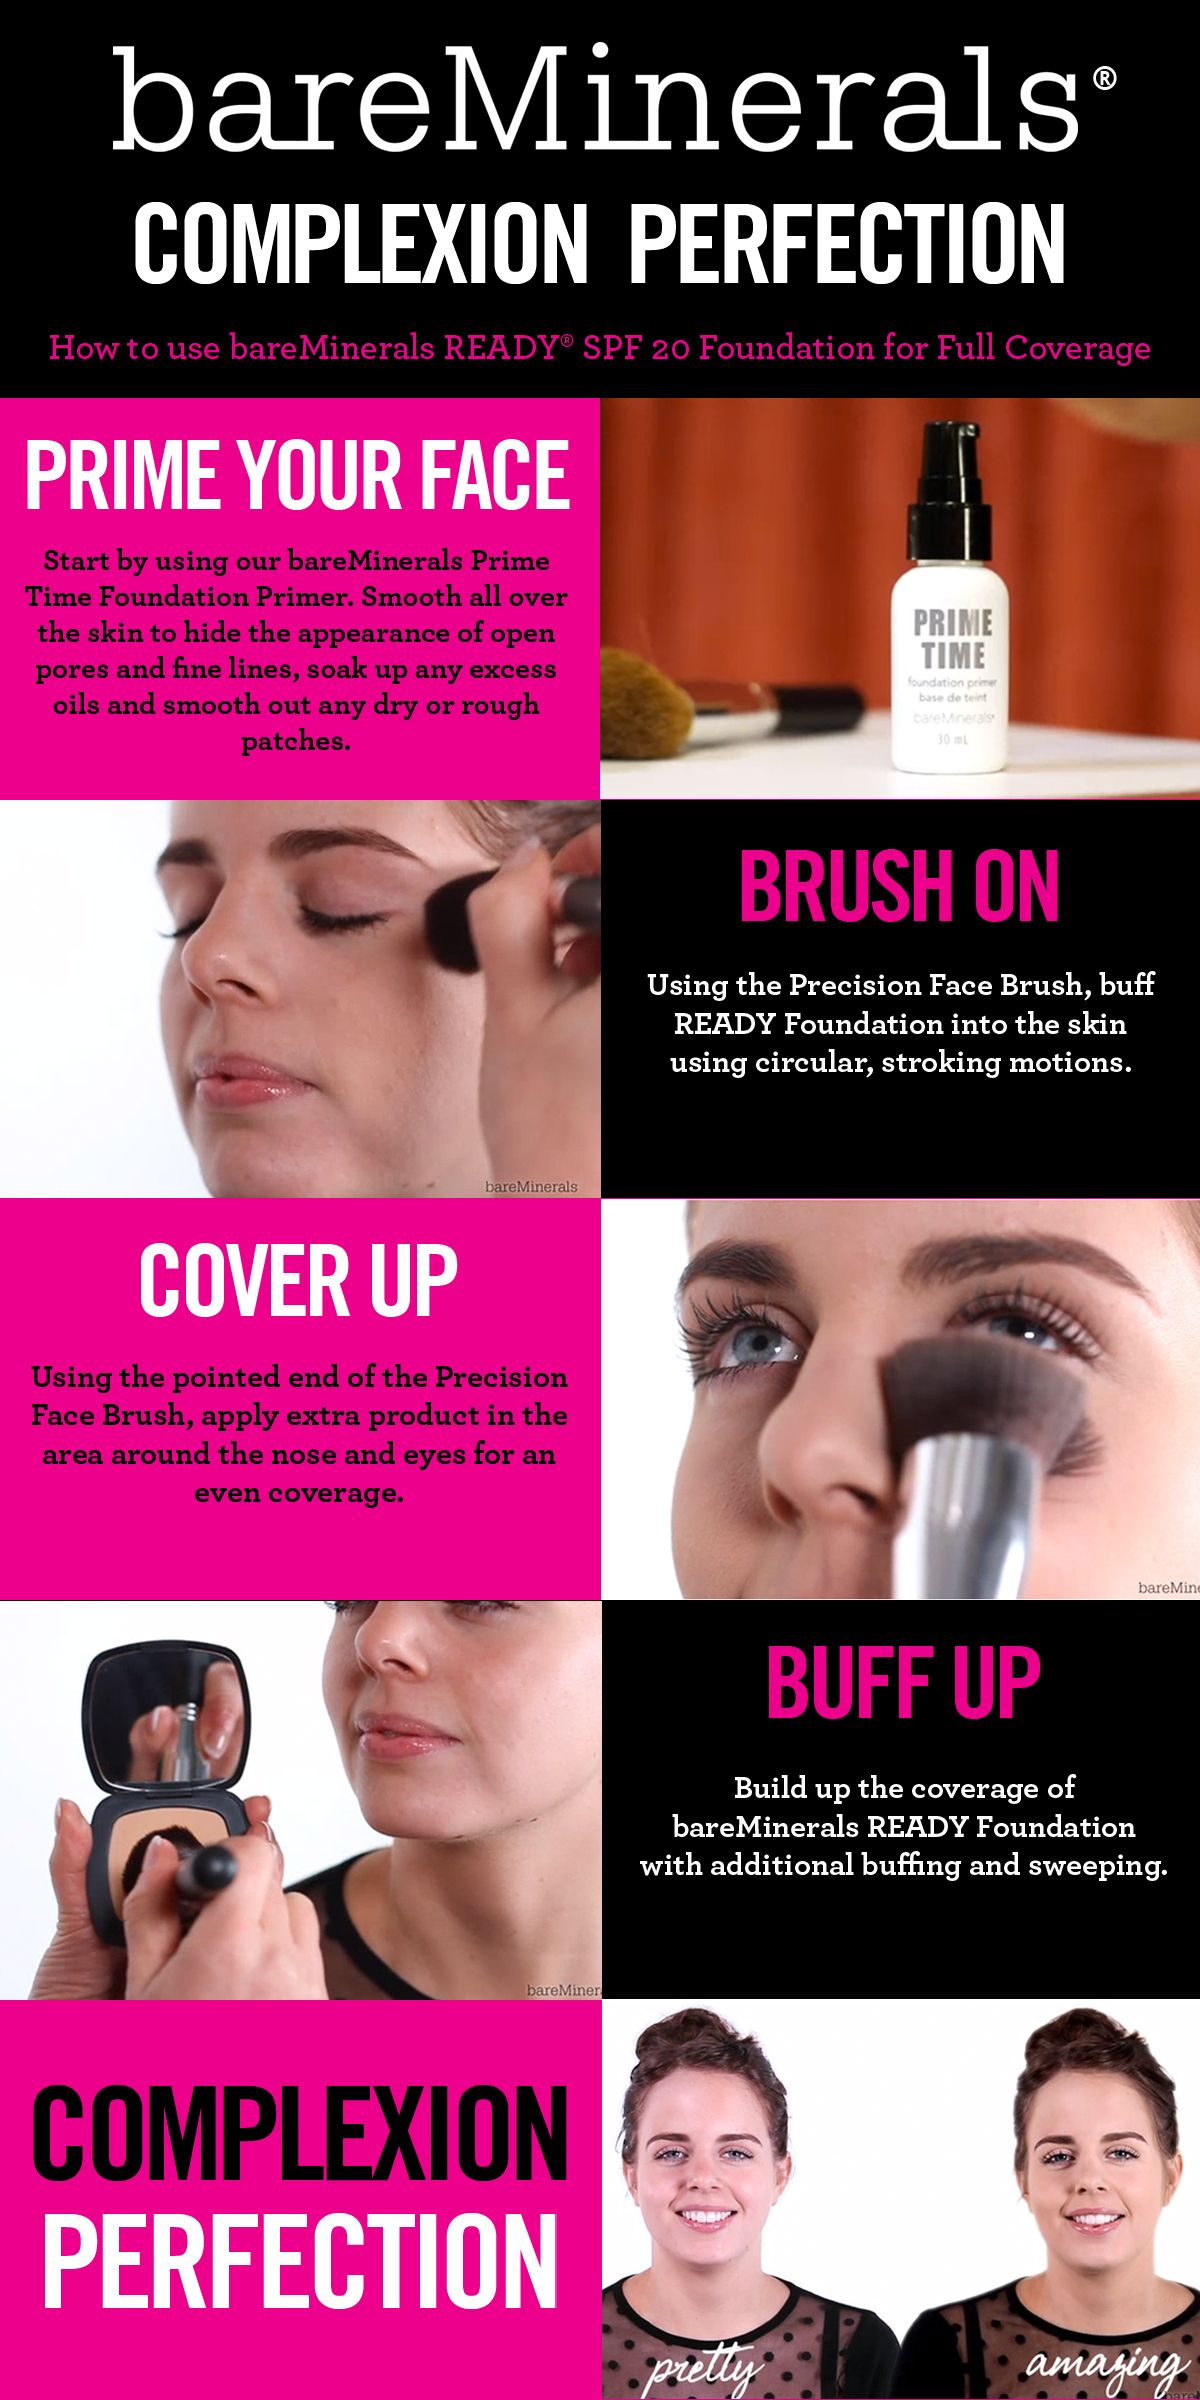 here's our guide to full coverage using #bareminerals ready